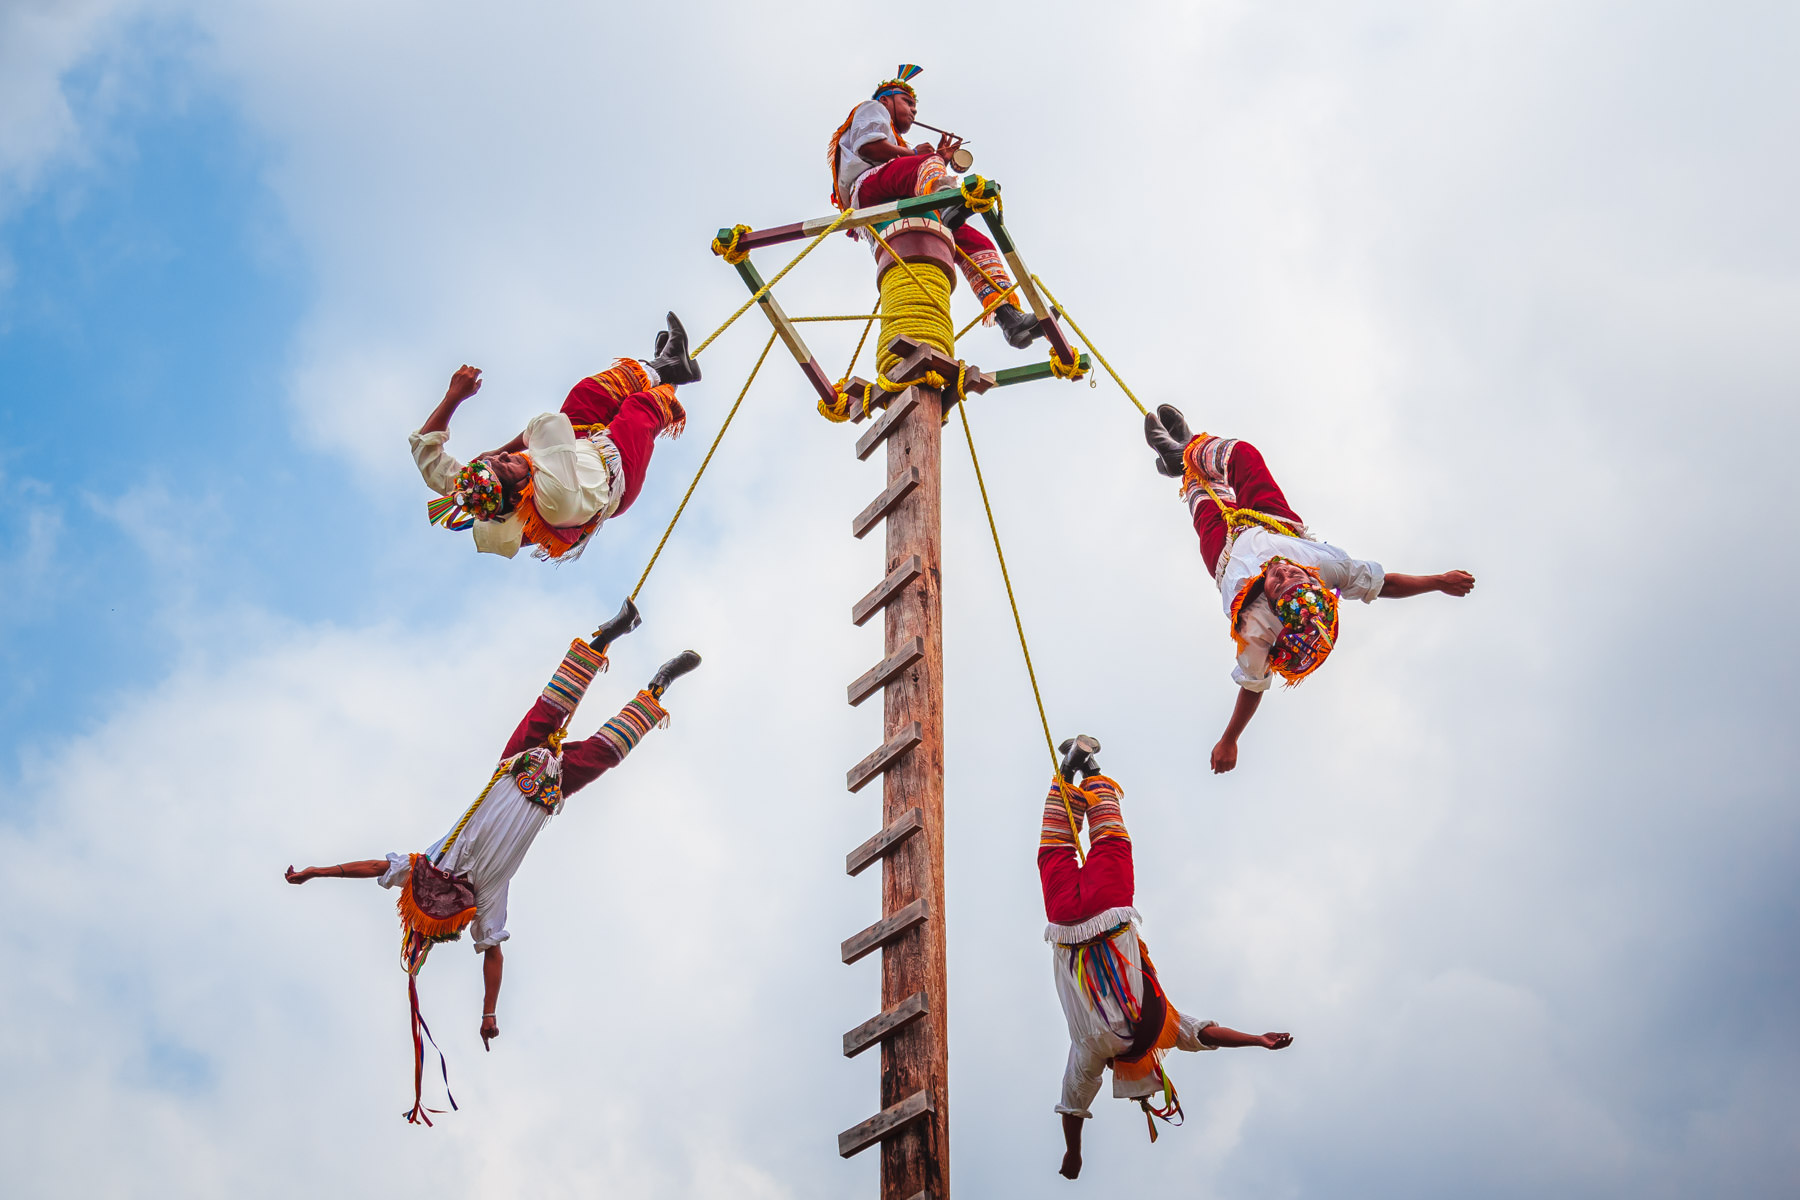 Mayans perform the traditional Danza de los Voladores (Dance of the Flyers) in San Miguel, Cozumel, Mexico.